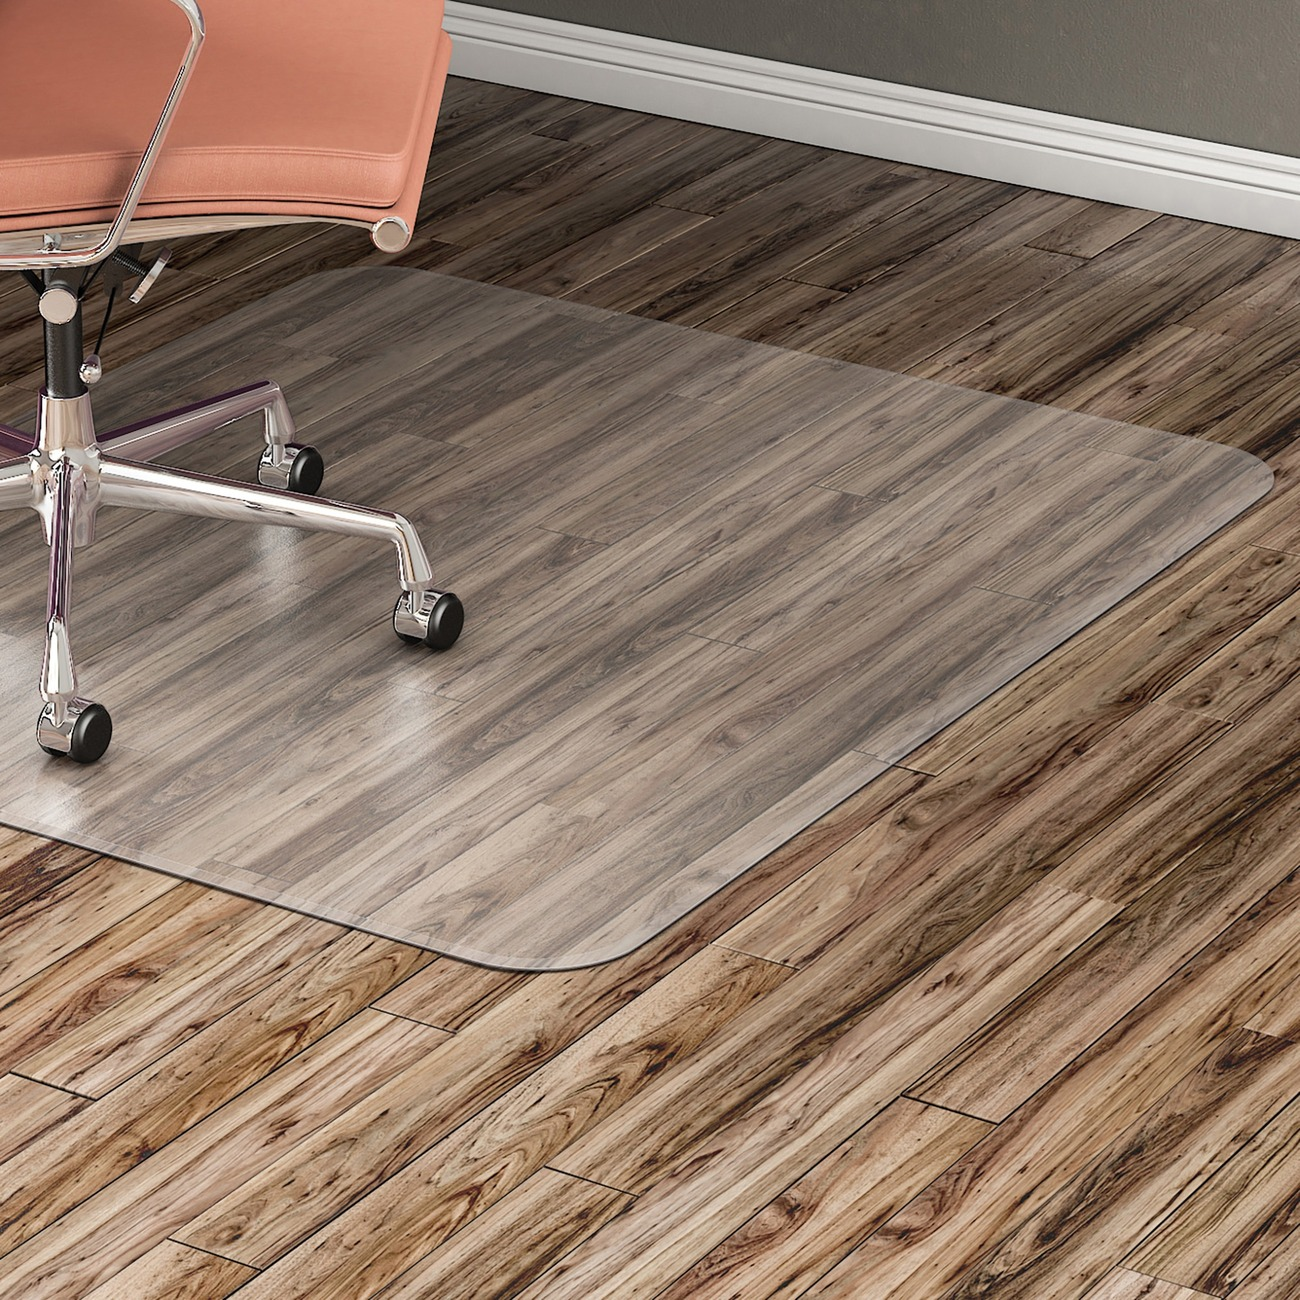 West coast office supplies furniture chairs chair mats sturdy 116 thick material protects wood tile and vinyl flooring from wear and tear caused by chair casters easy glide rolling surface dailygadgetfo Choice Image